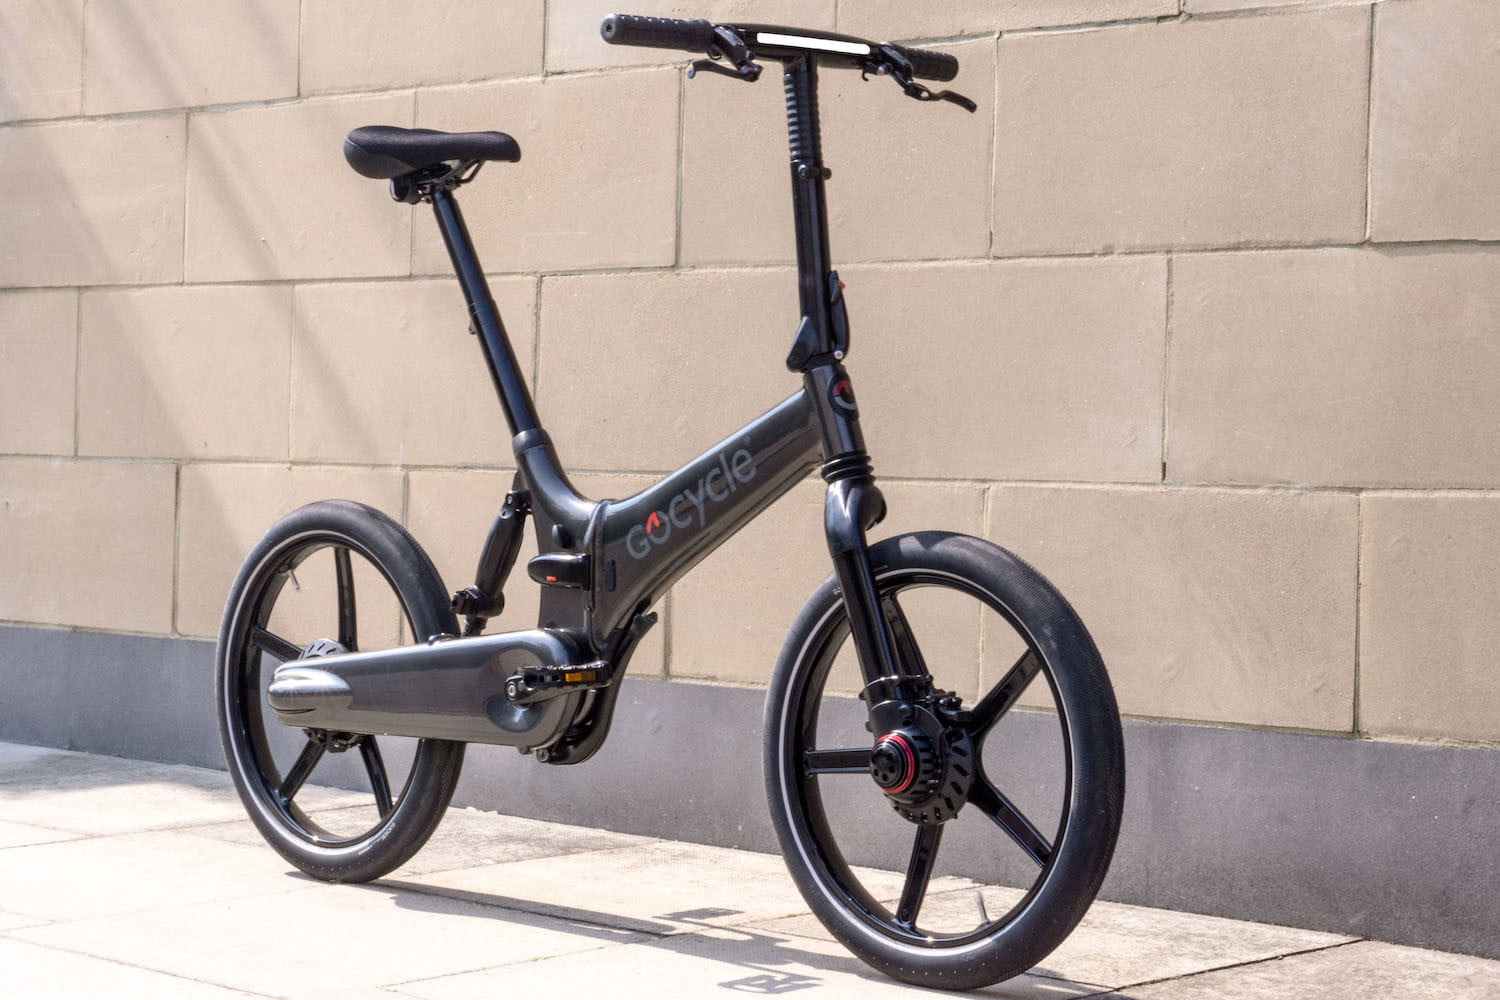 Meet the new fastest-folding e-bike, the GoCycle GXi